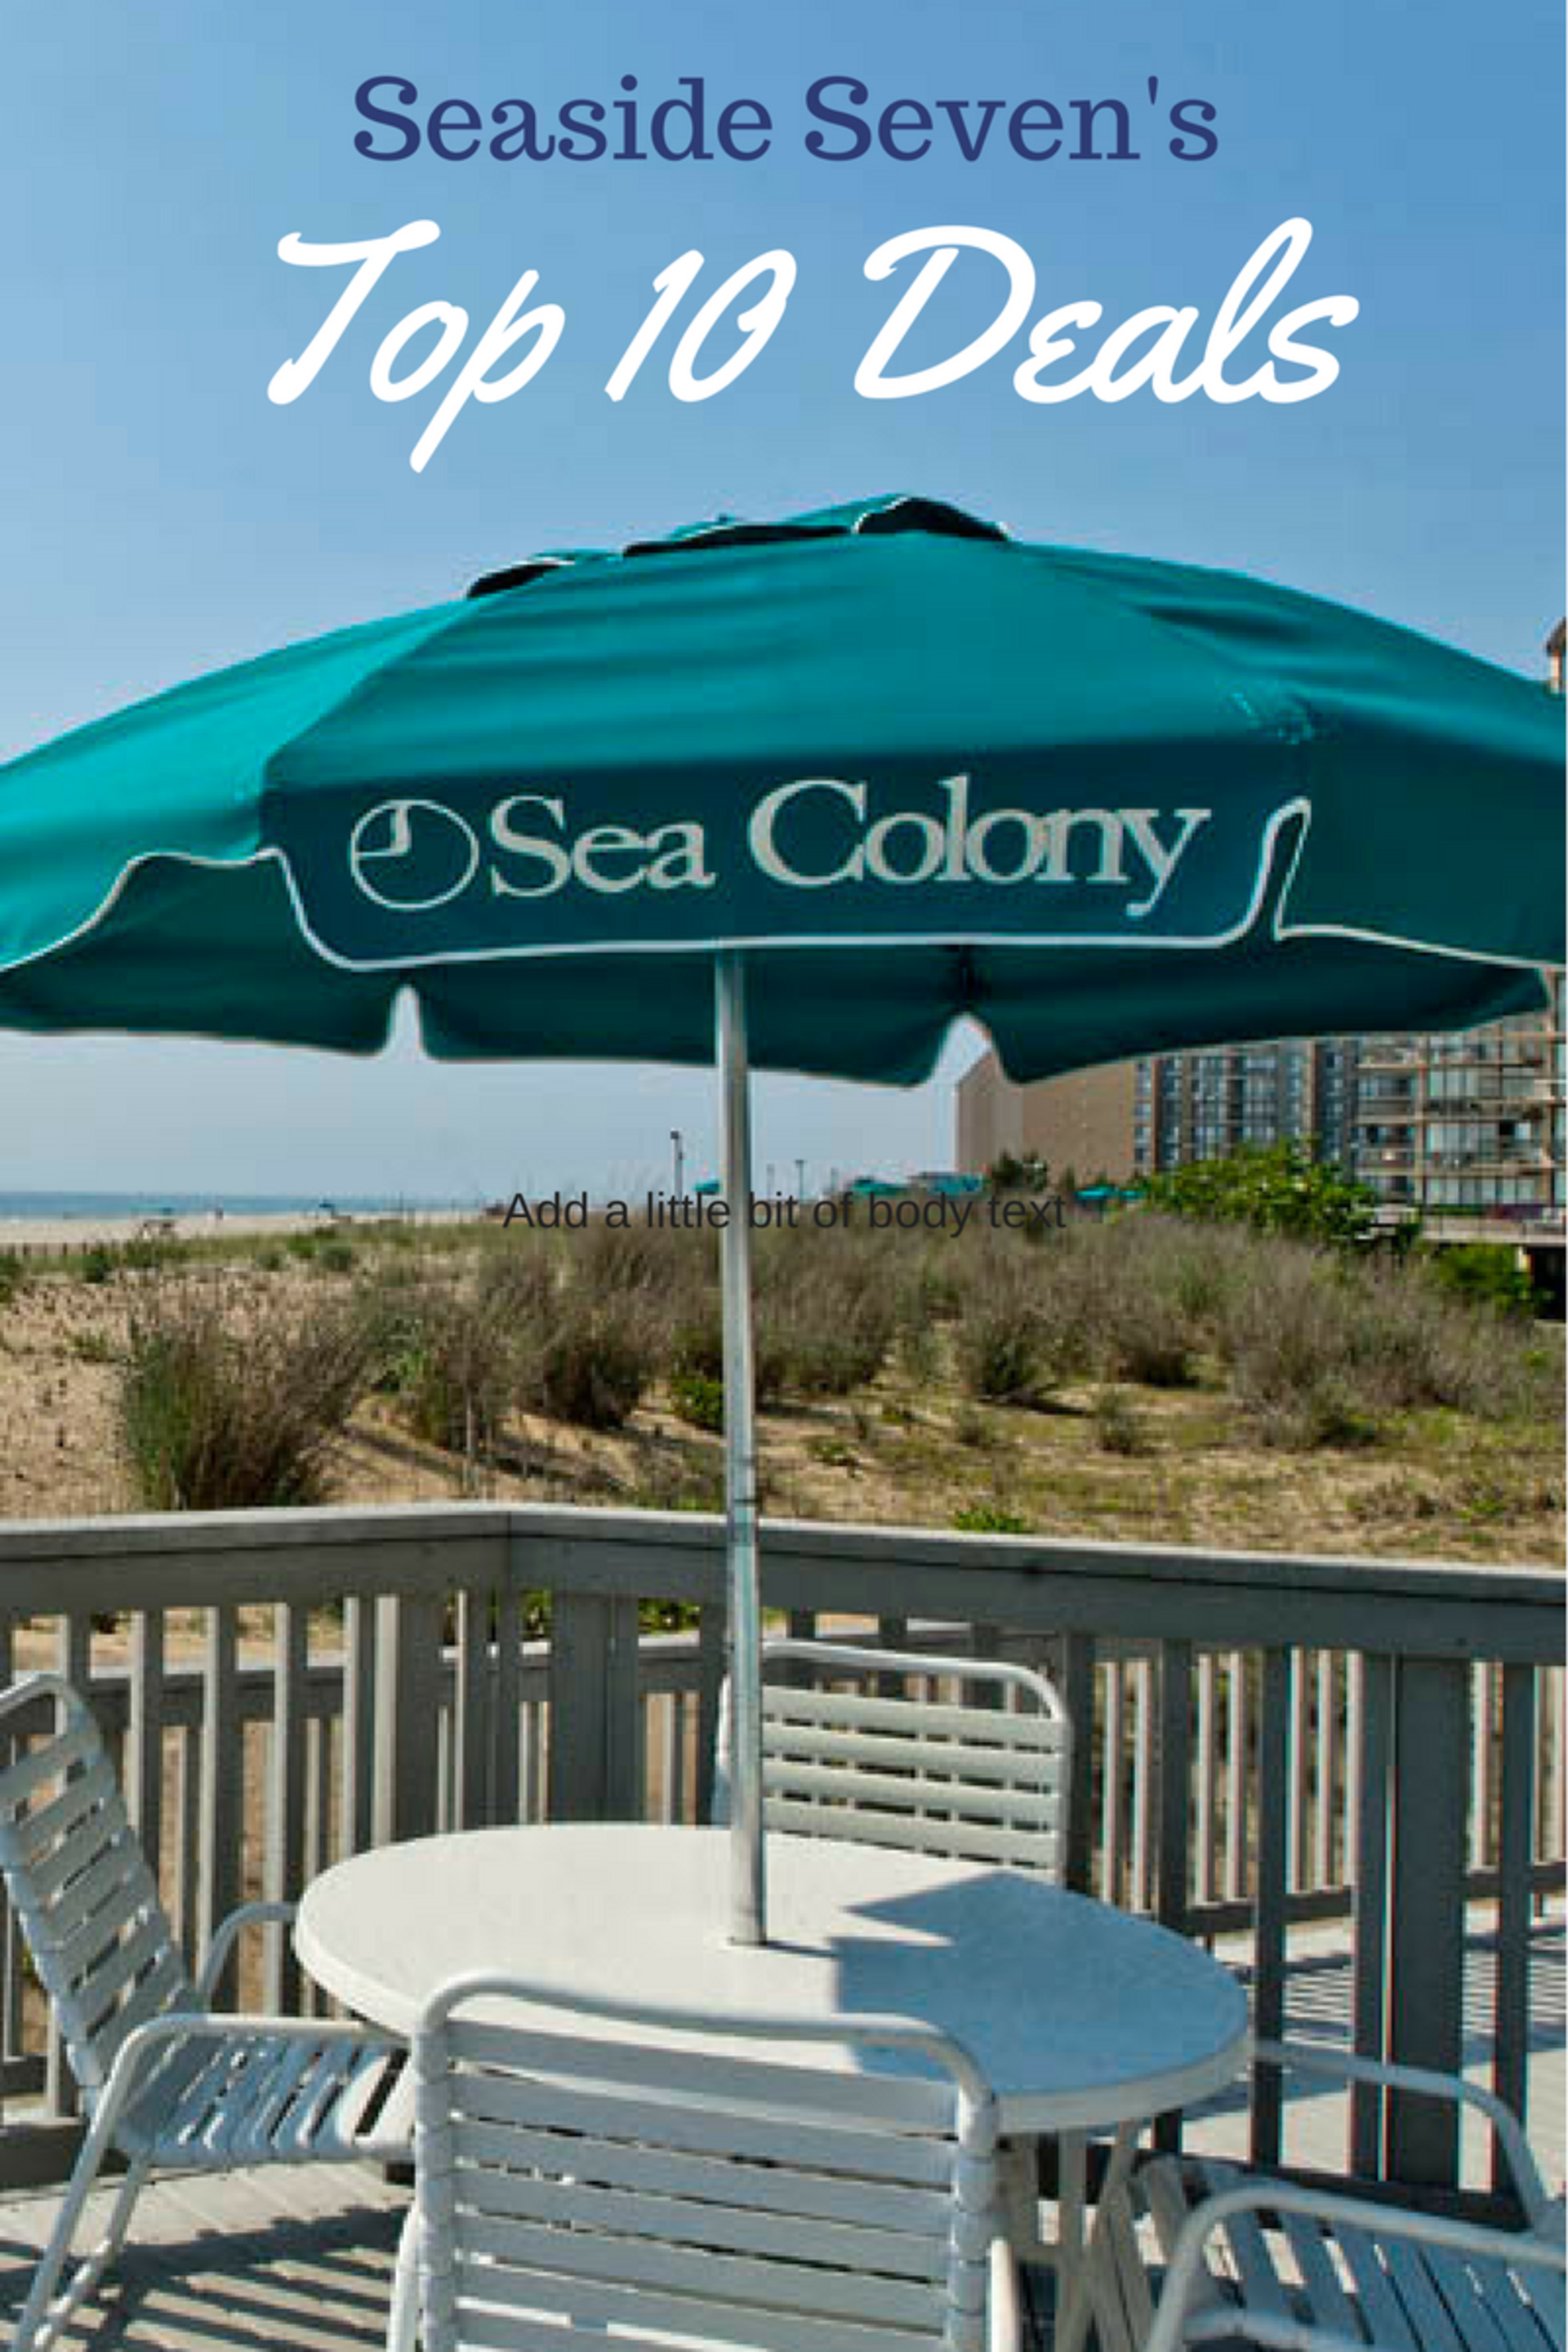 Top 10 Deals at Sea Colony!